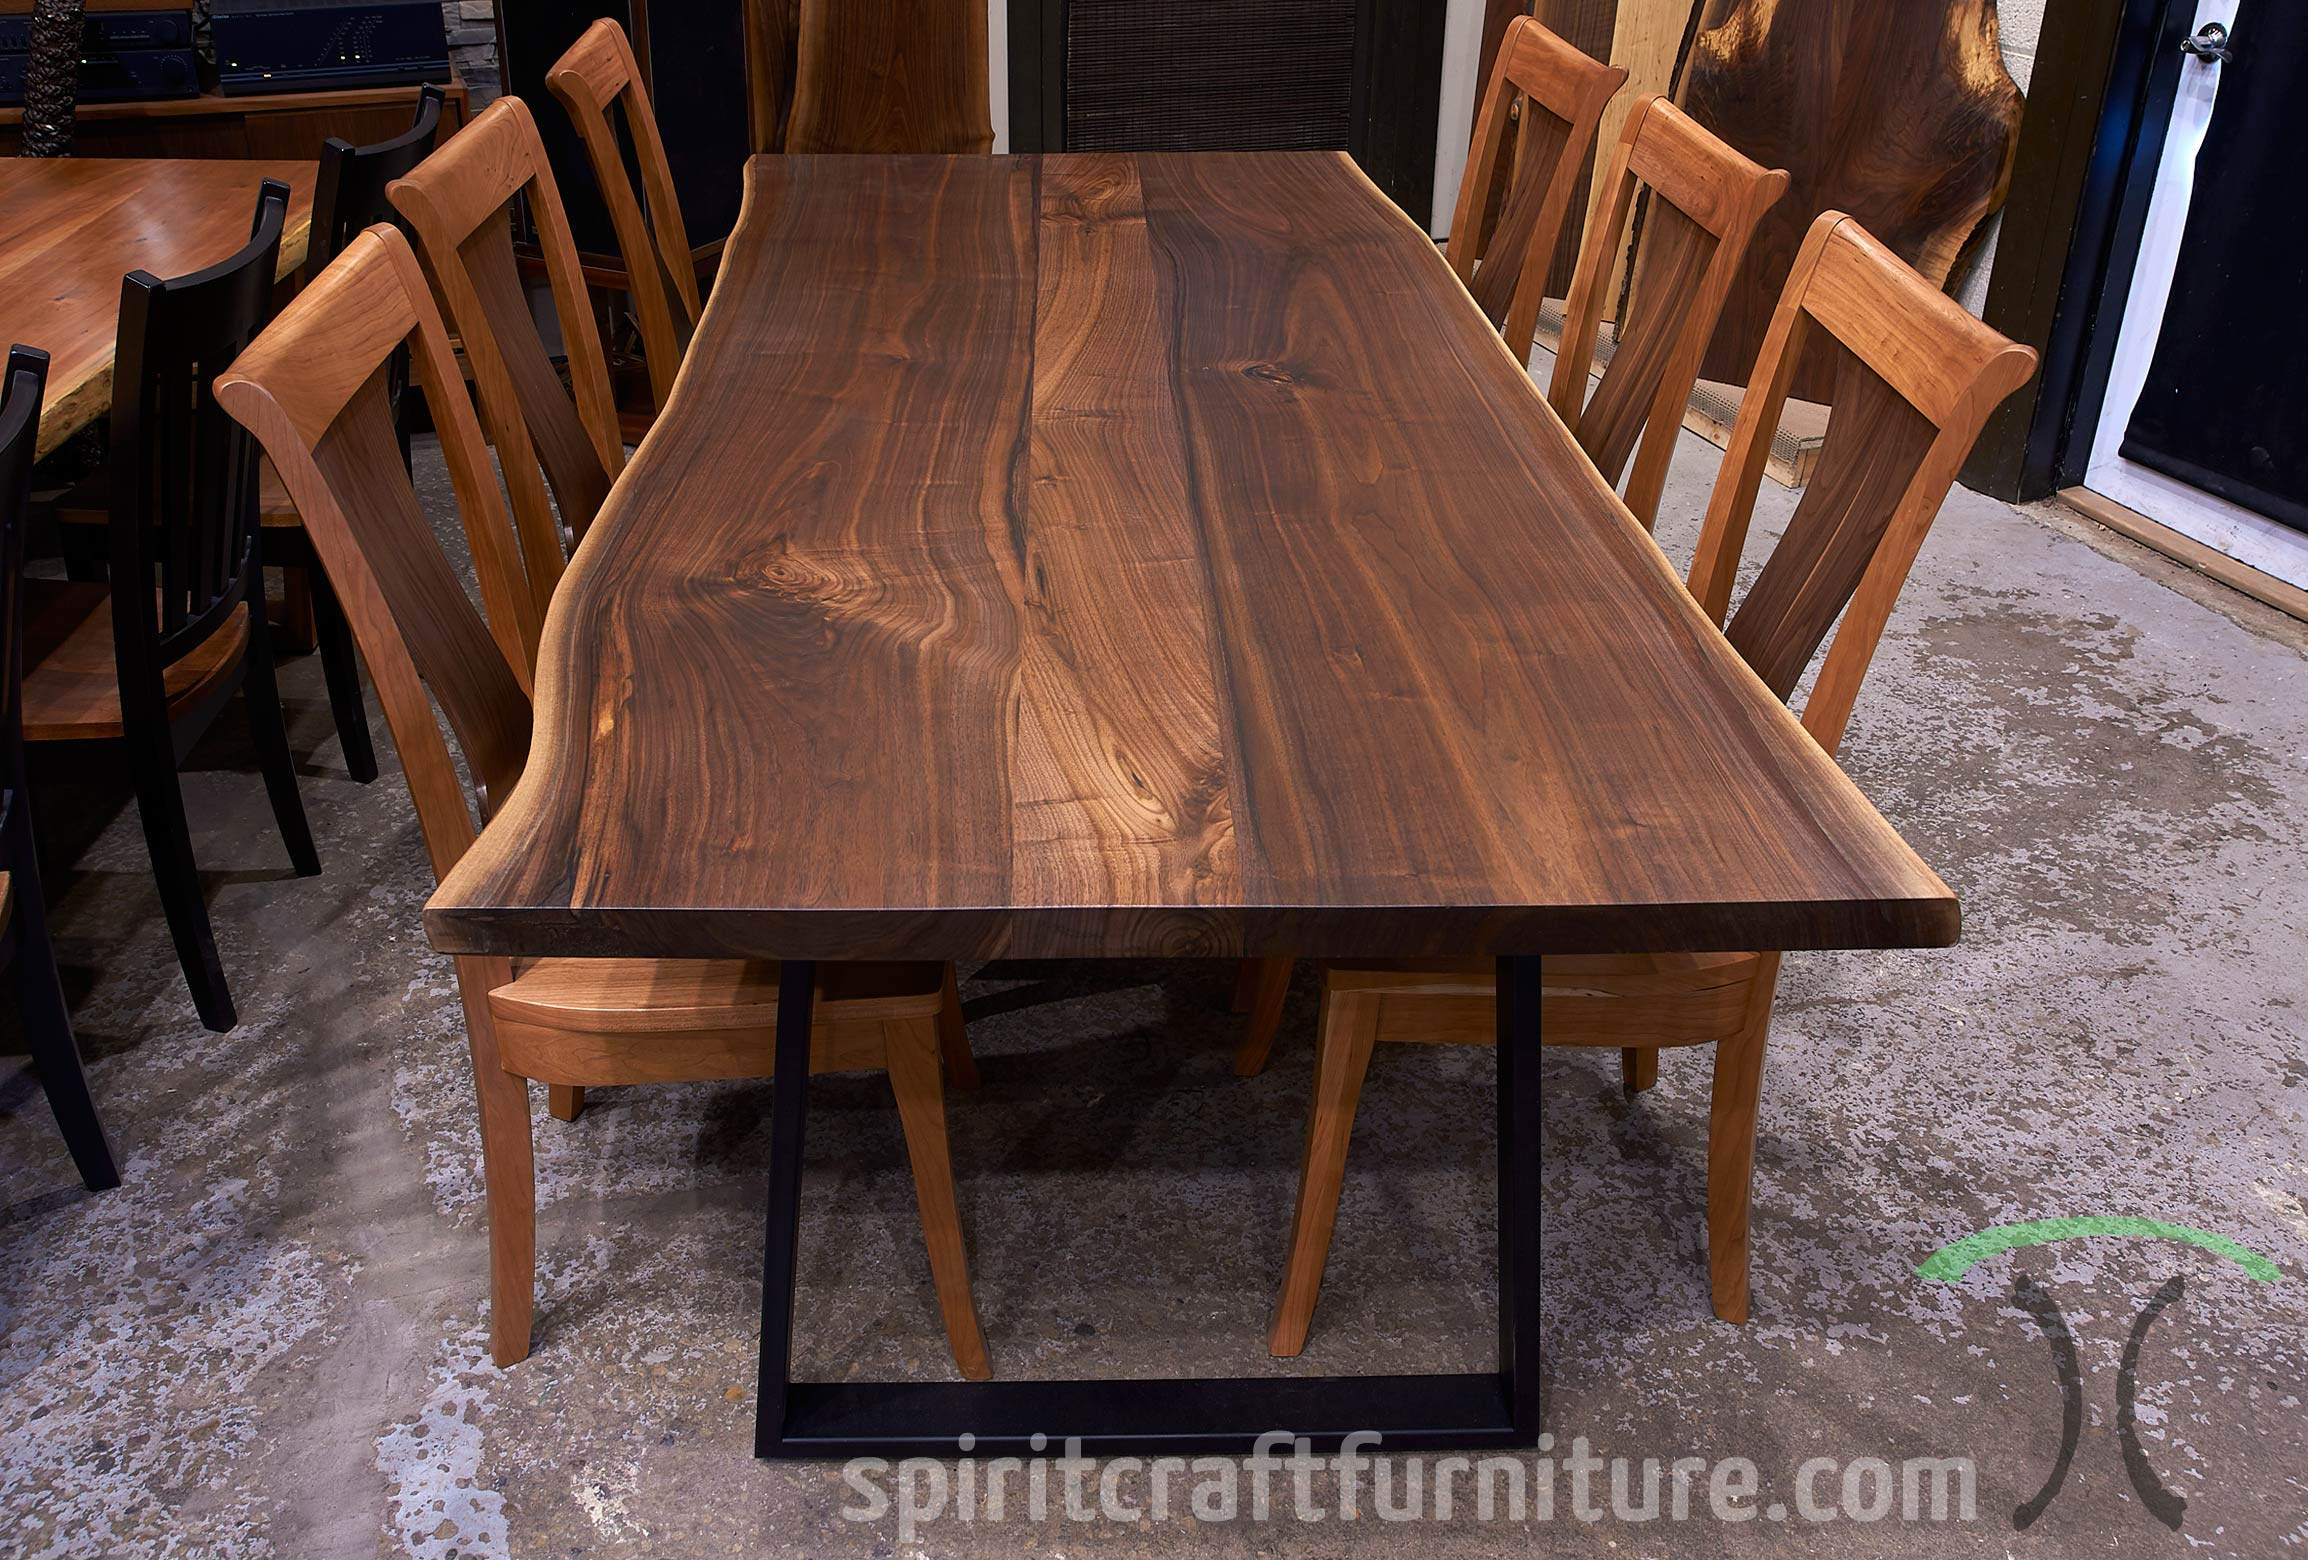 RH Yoder Benjamin Side Chairs in Cherry with Walnut Back Panel with Walnut Live Edge Dining Table Pictured in our Showroom